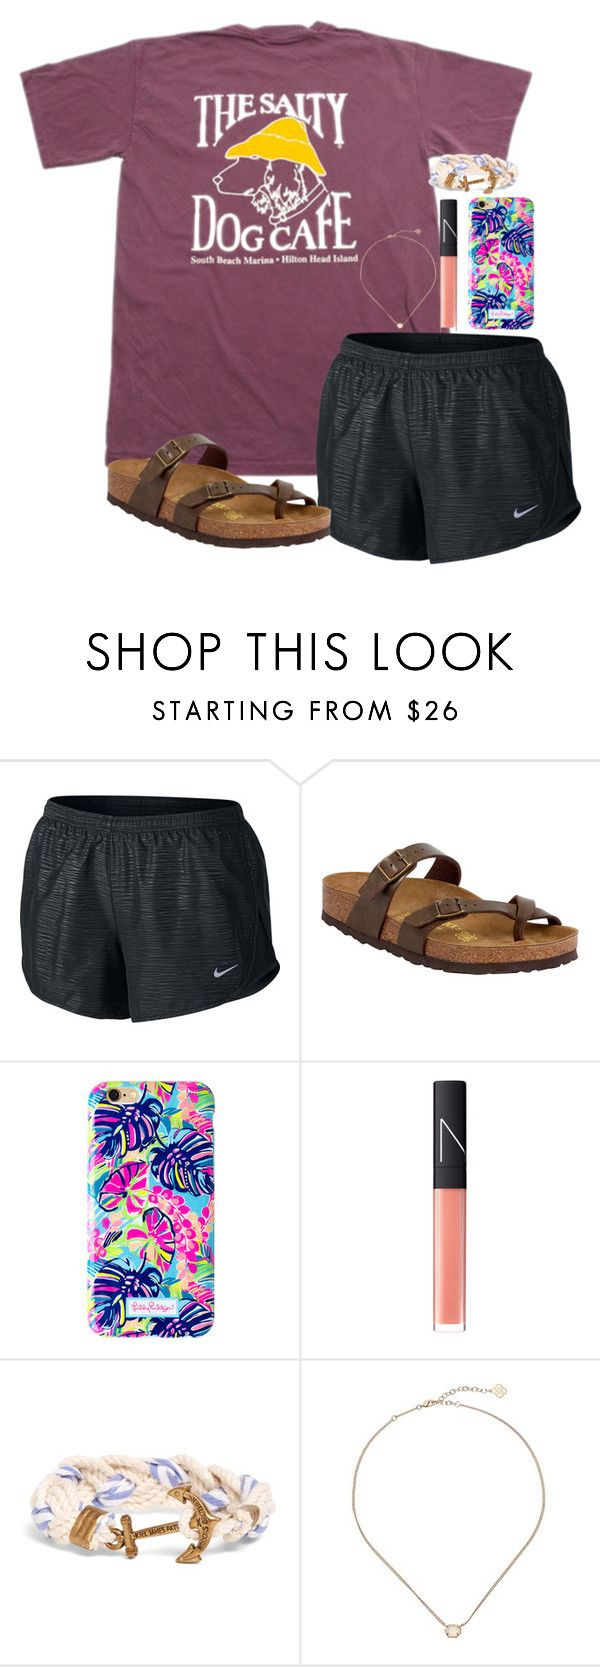 """Southern comfort"" by northernprepgirl ❤ liked on Polyvore featuring NIKE, Birkenstock, Lilly Pulitzer, NARS Cosmetics, Brooks Brothers and Kendra Scott"